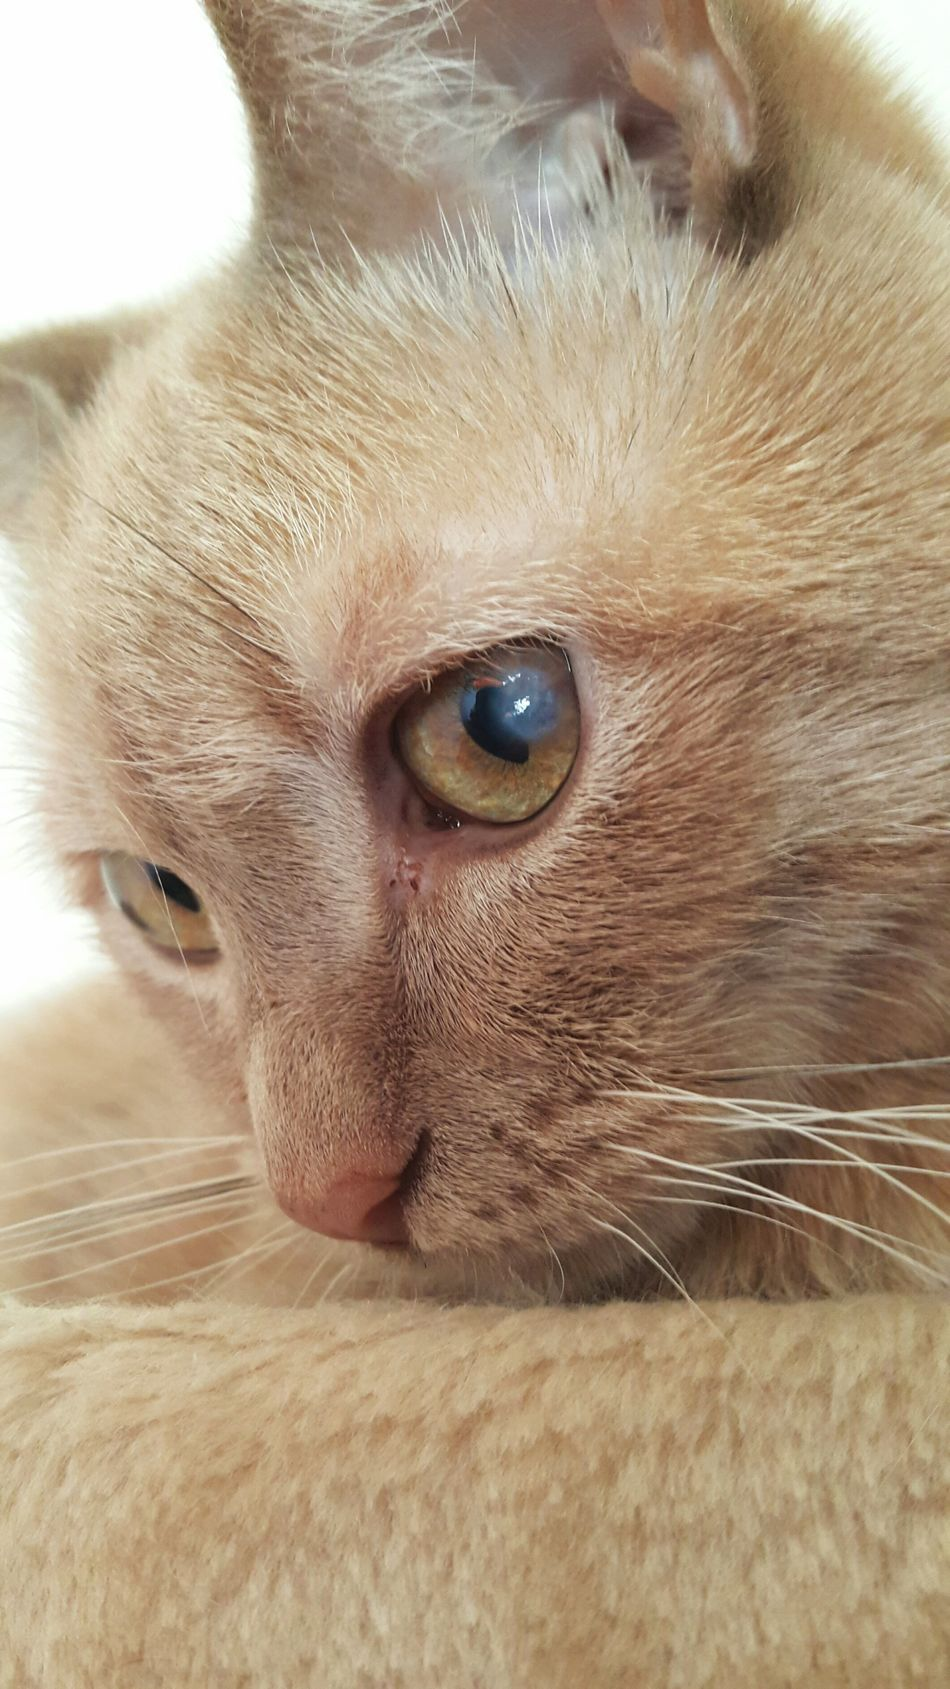 Rita❤ Cat Mycat Cats Of EyeEm Pets Feline One Animal Close-up Imperfectly Perfect Imperfection Is Beauty Mammal Domestic Cat Focus On Foreground Animal Eye Eye Domestic Animals No People Cat Eyes